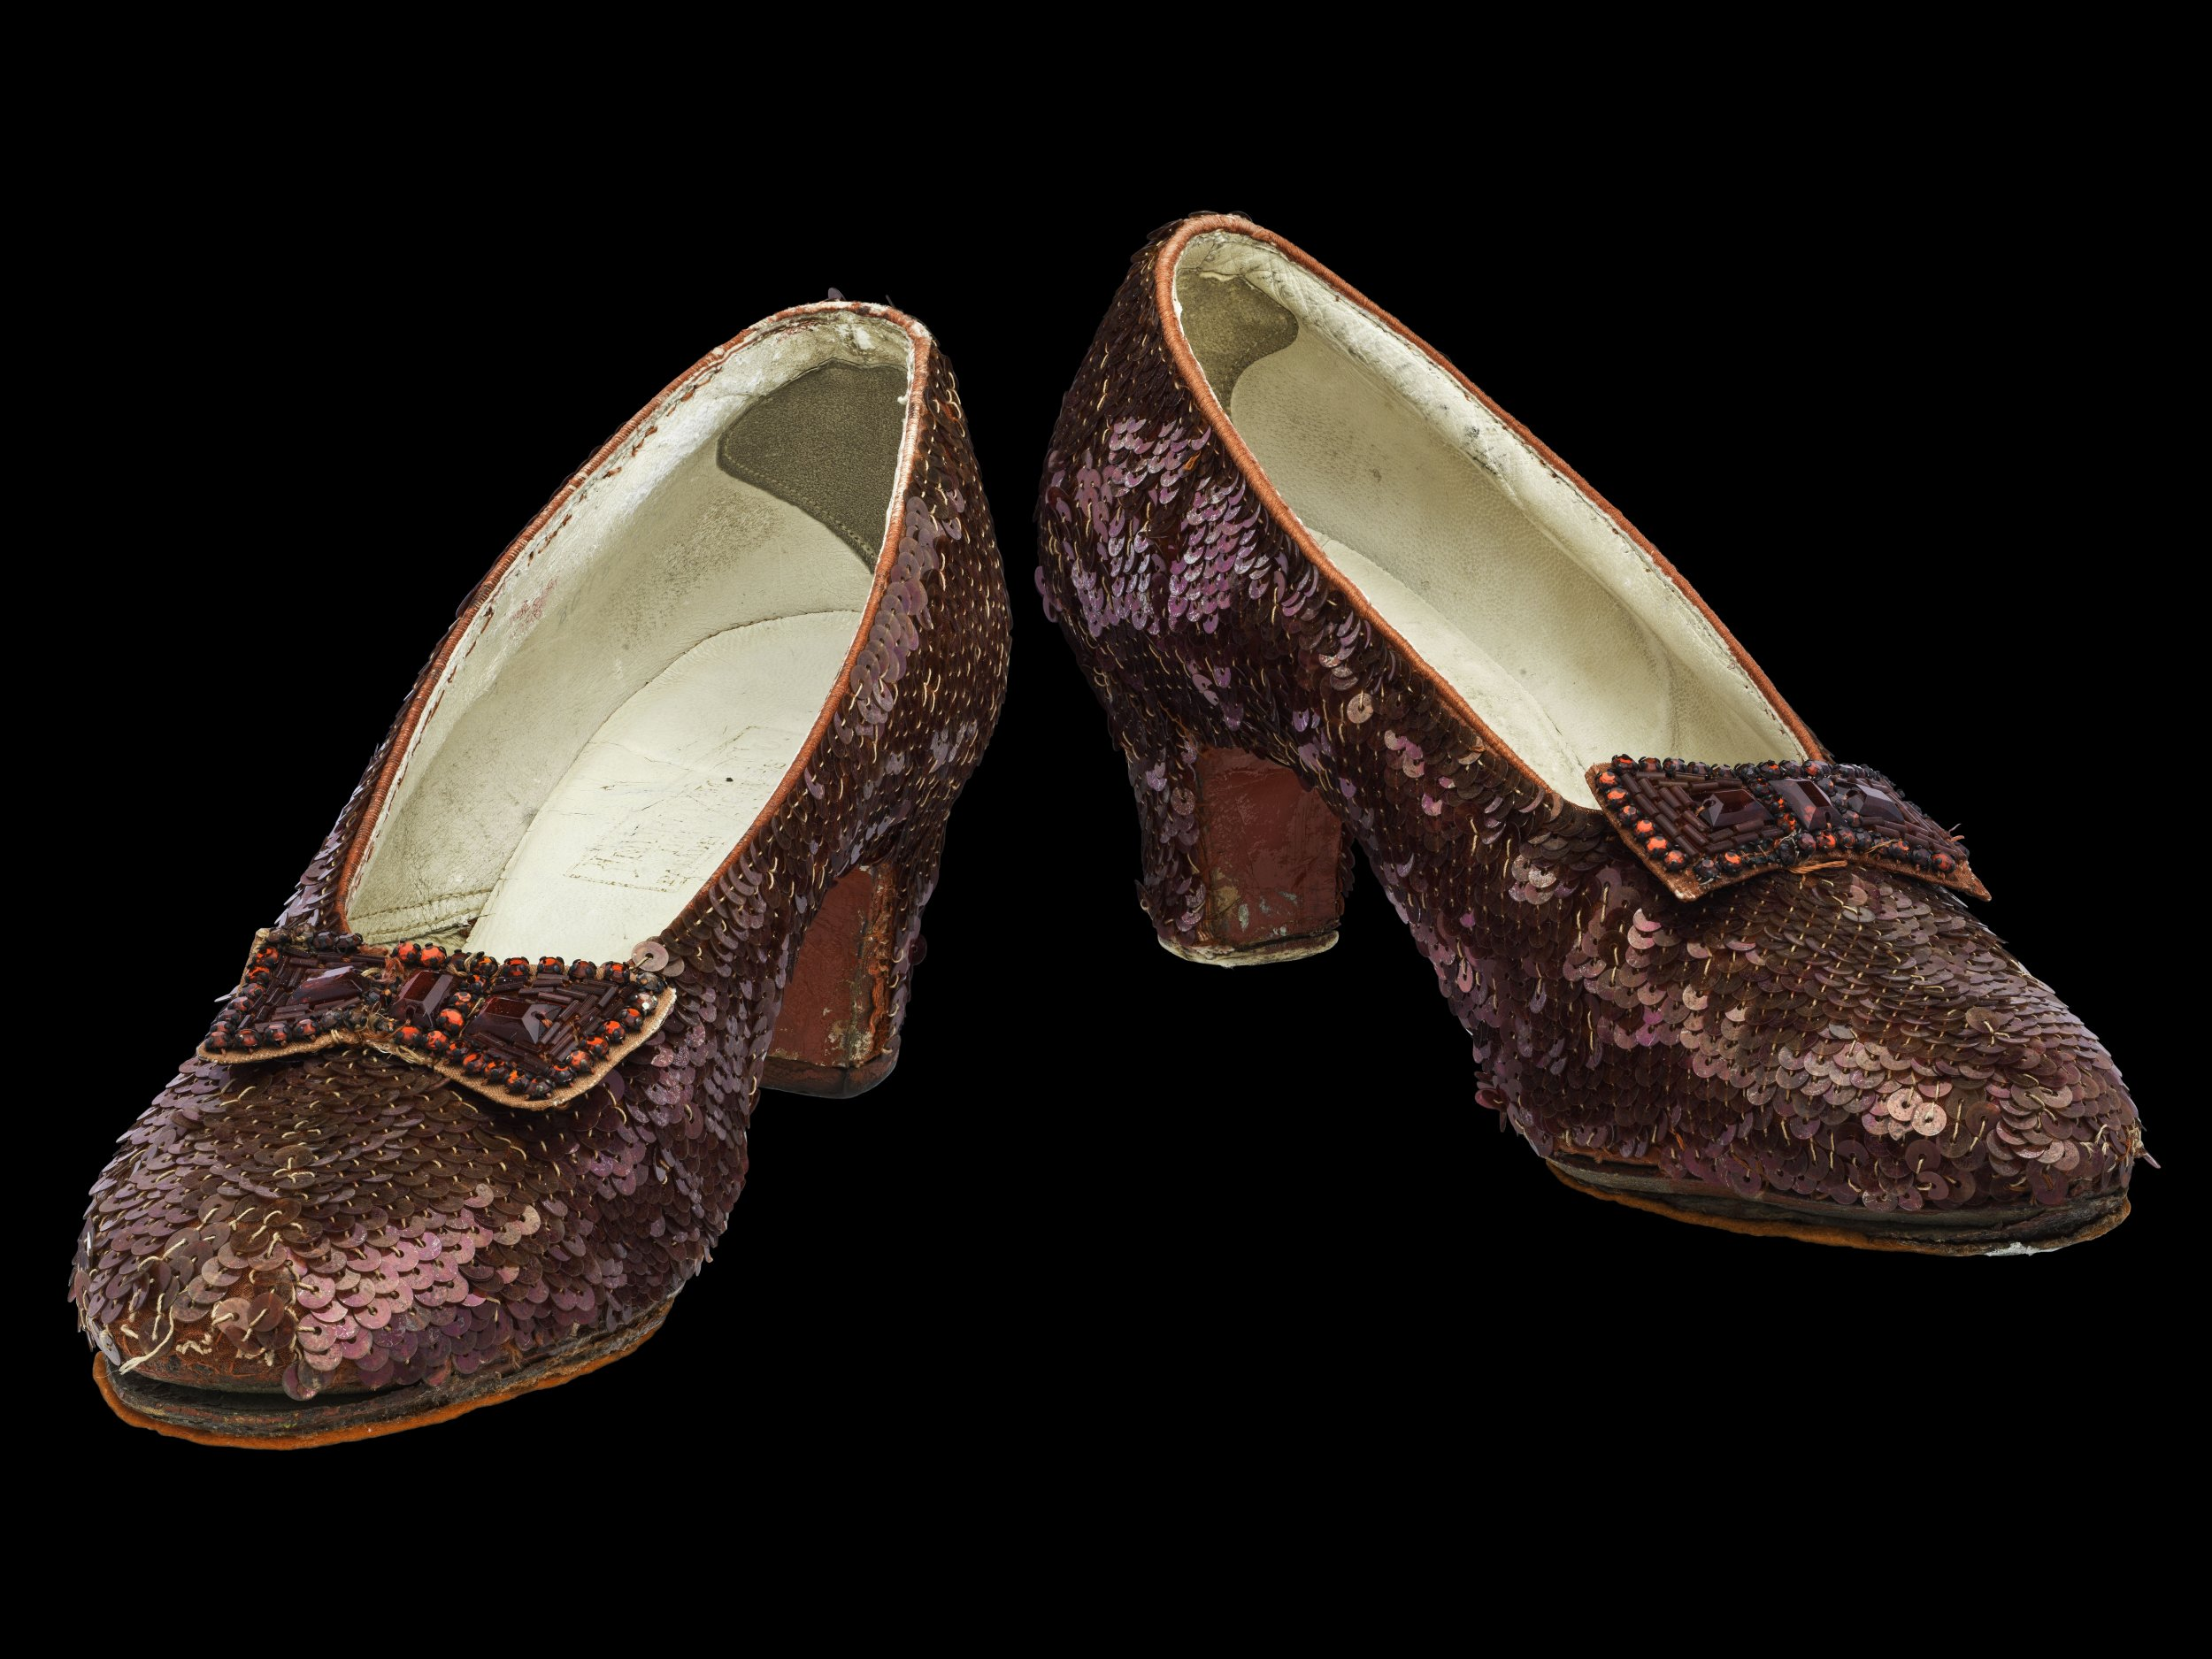 04_24_Smithsonian_ruby_slippers